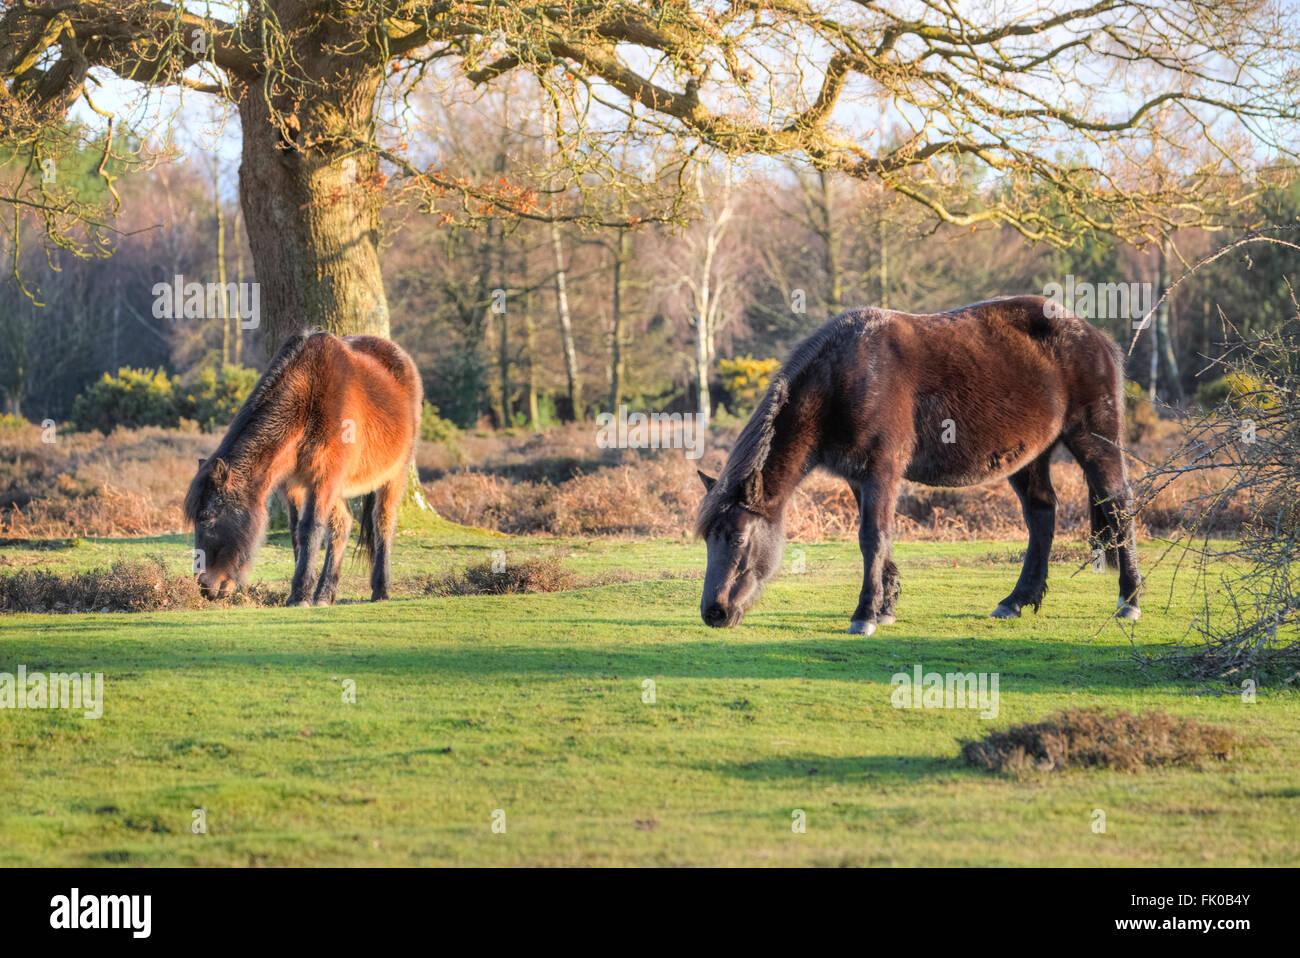 wild New Forest ponies grazing near Lyndhurst, Hampshire, England, UK Stock Photo